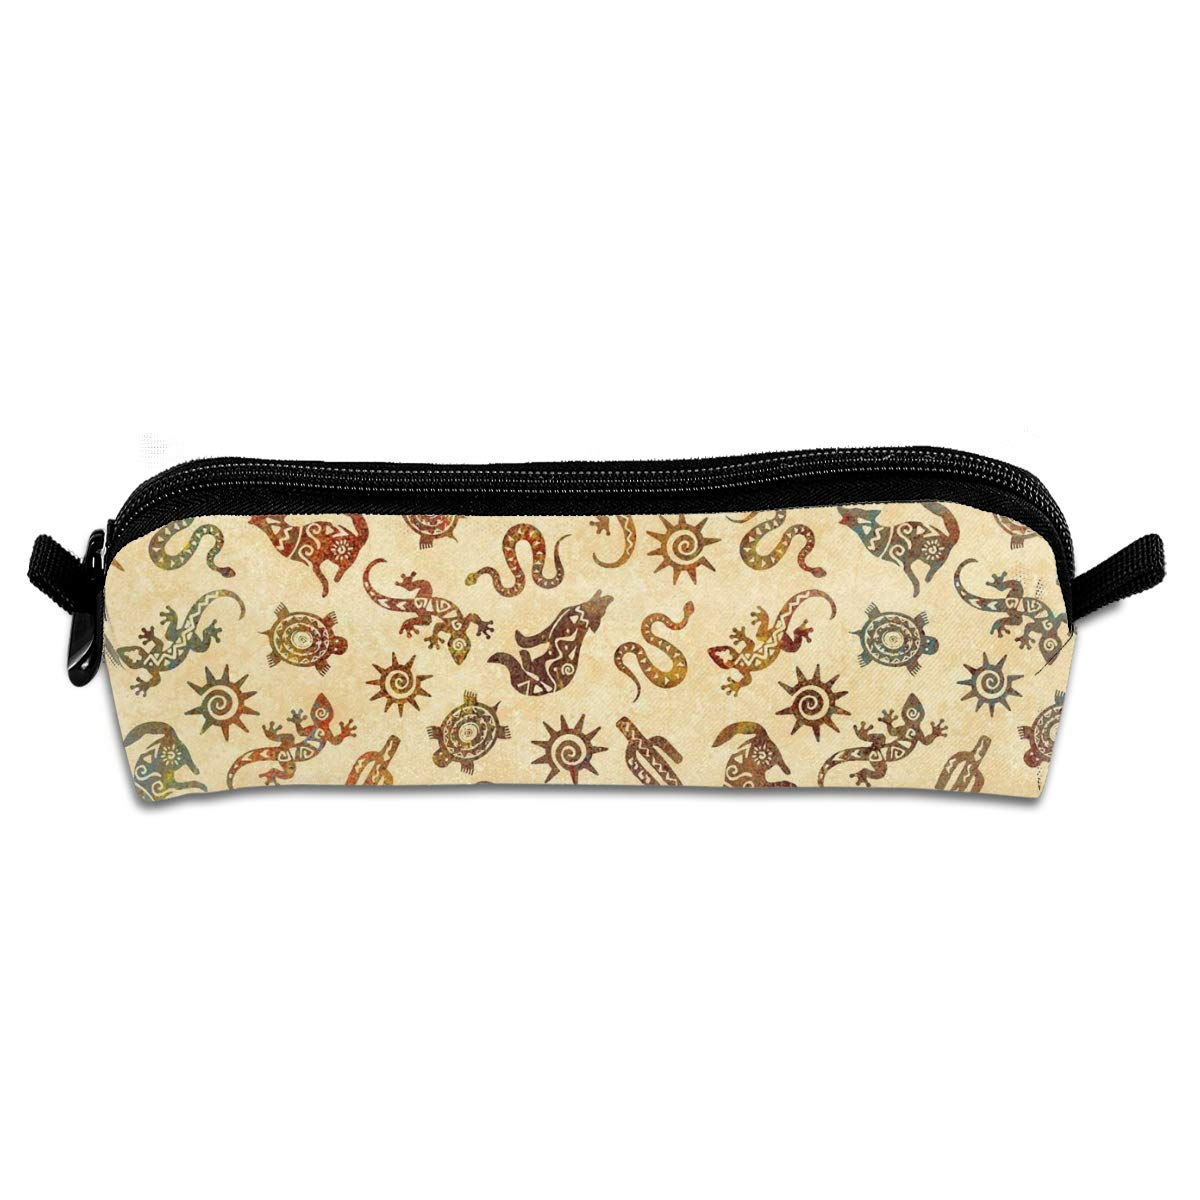 KutLong Southwest Tribe Animal Icon Student Pencil Pen Case Zipper Pouch Small Cosmetic Makeup Bag Coin Purse?for Kids Teens and Other School Supplies